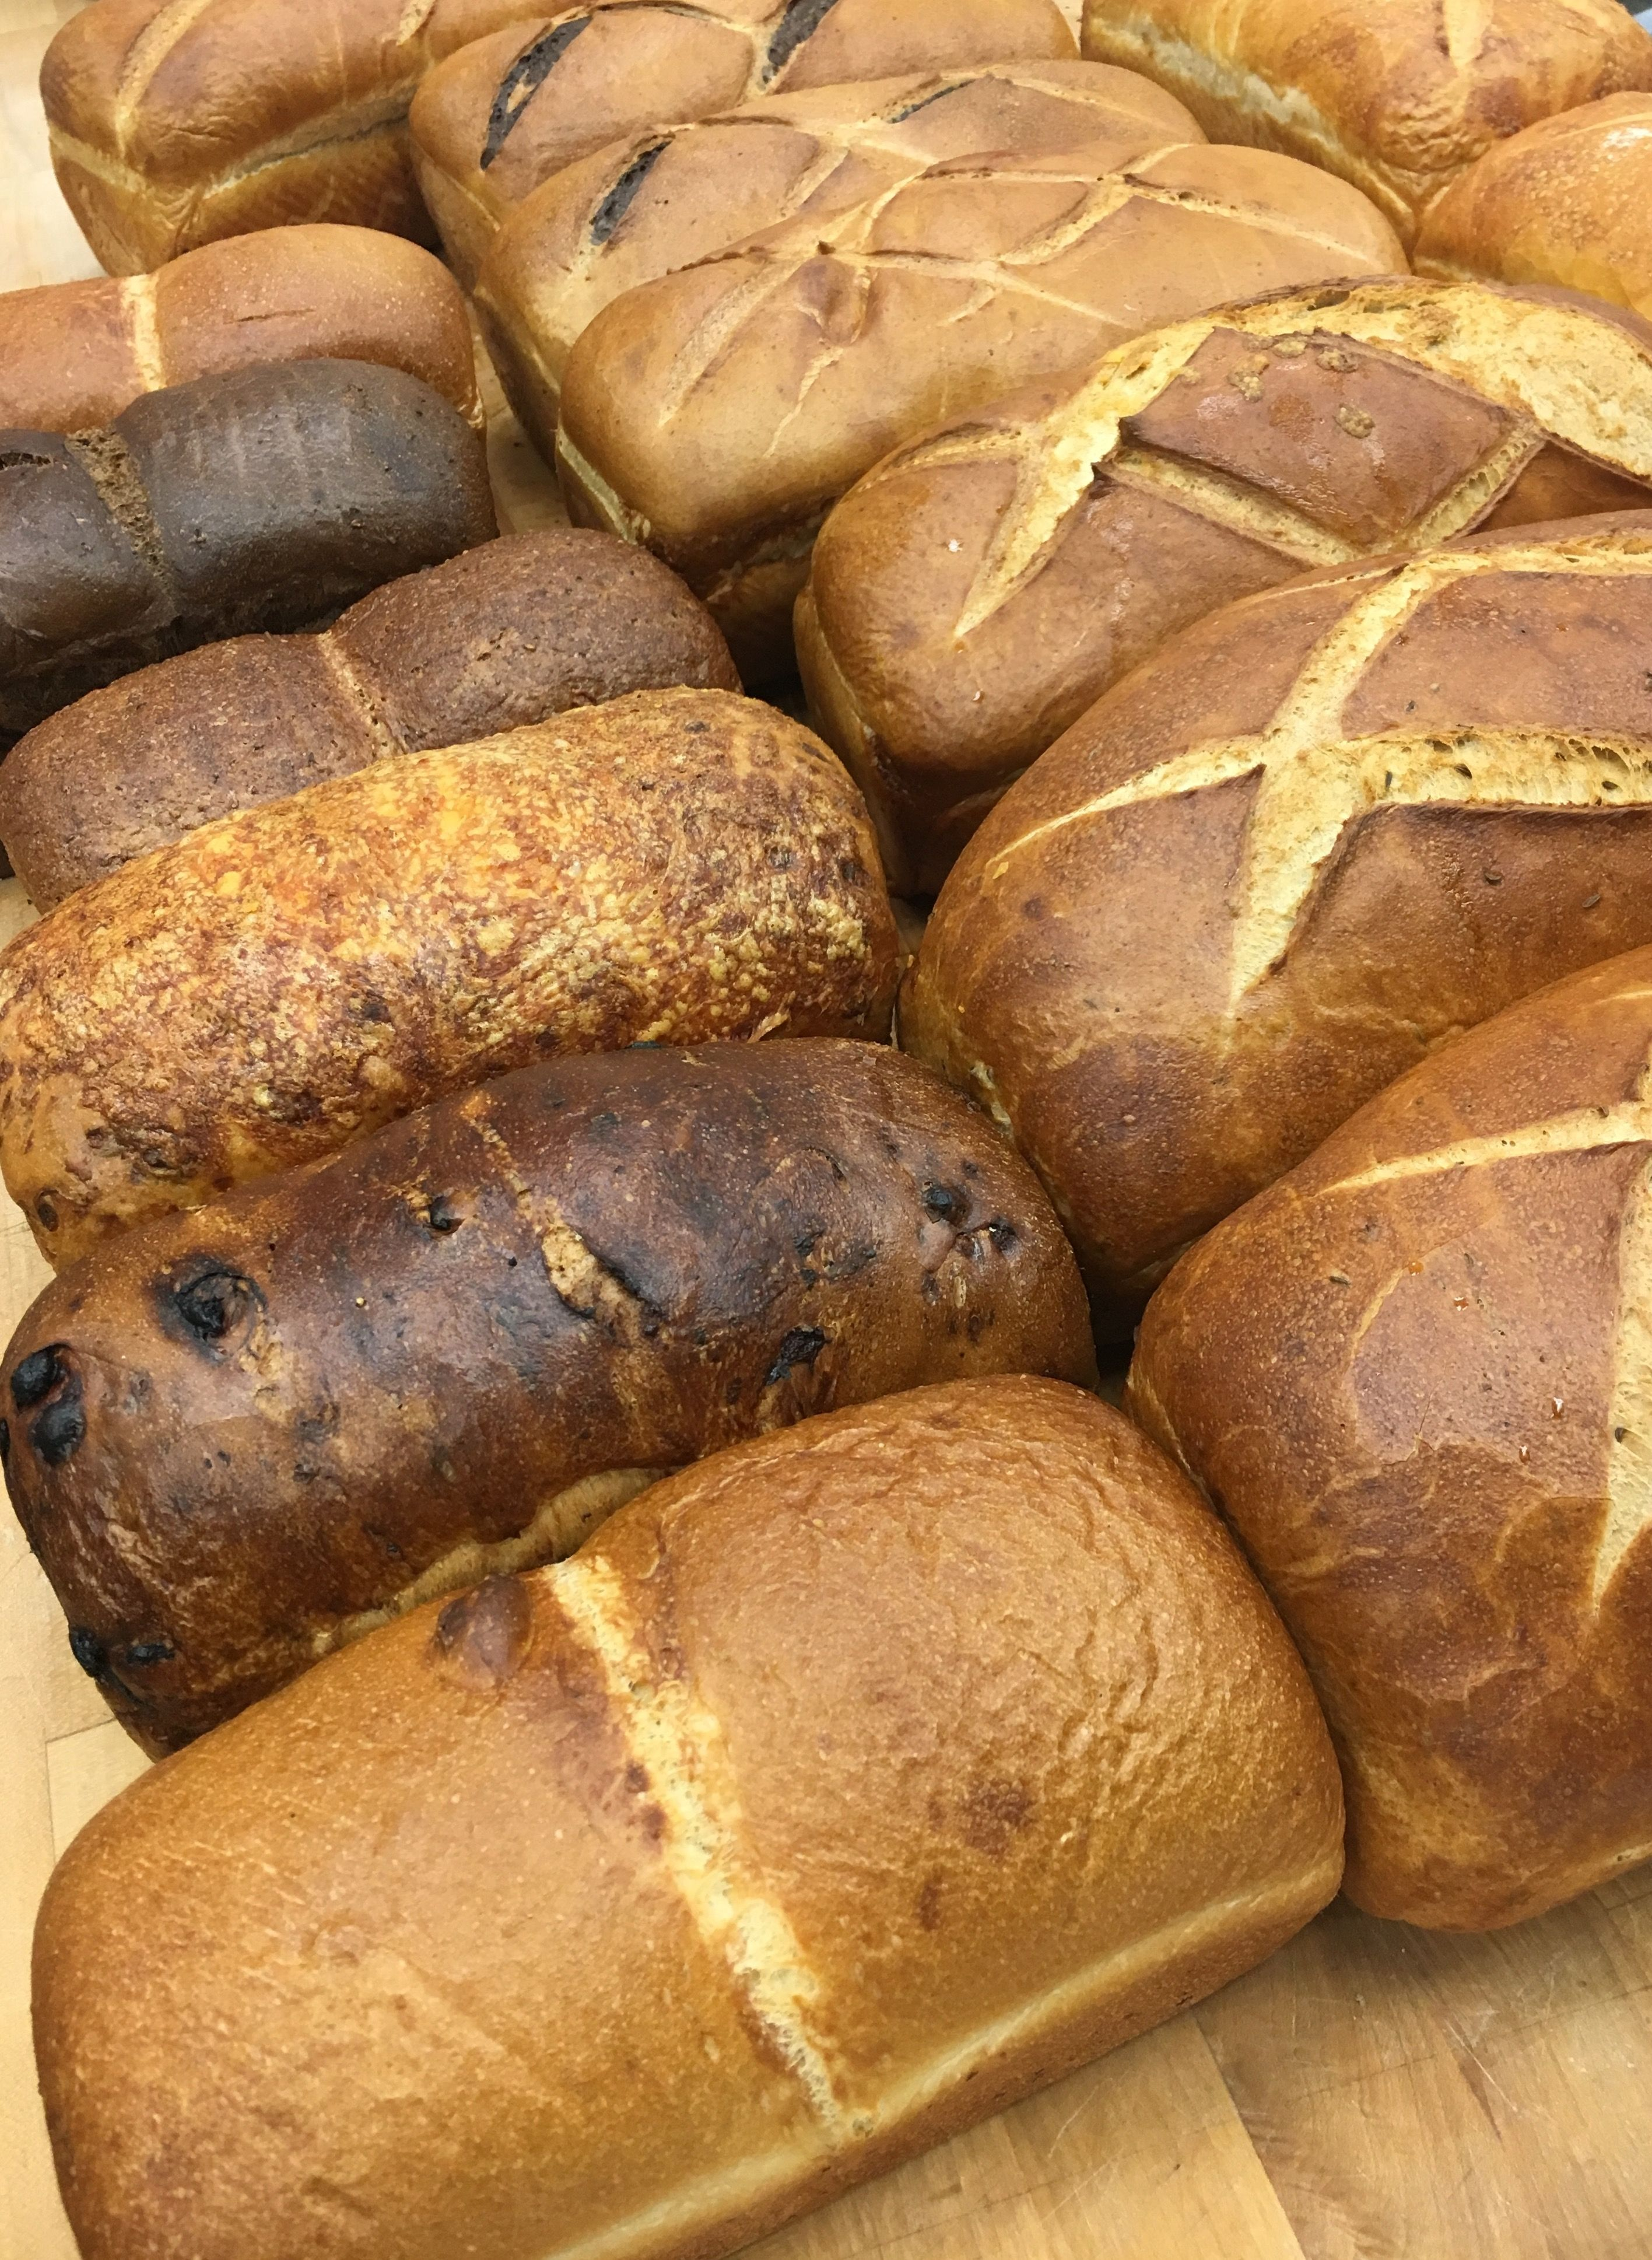 Hot fresh bread from our bakery! Baked fresh every day! Oh